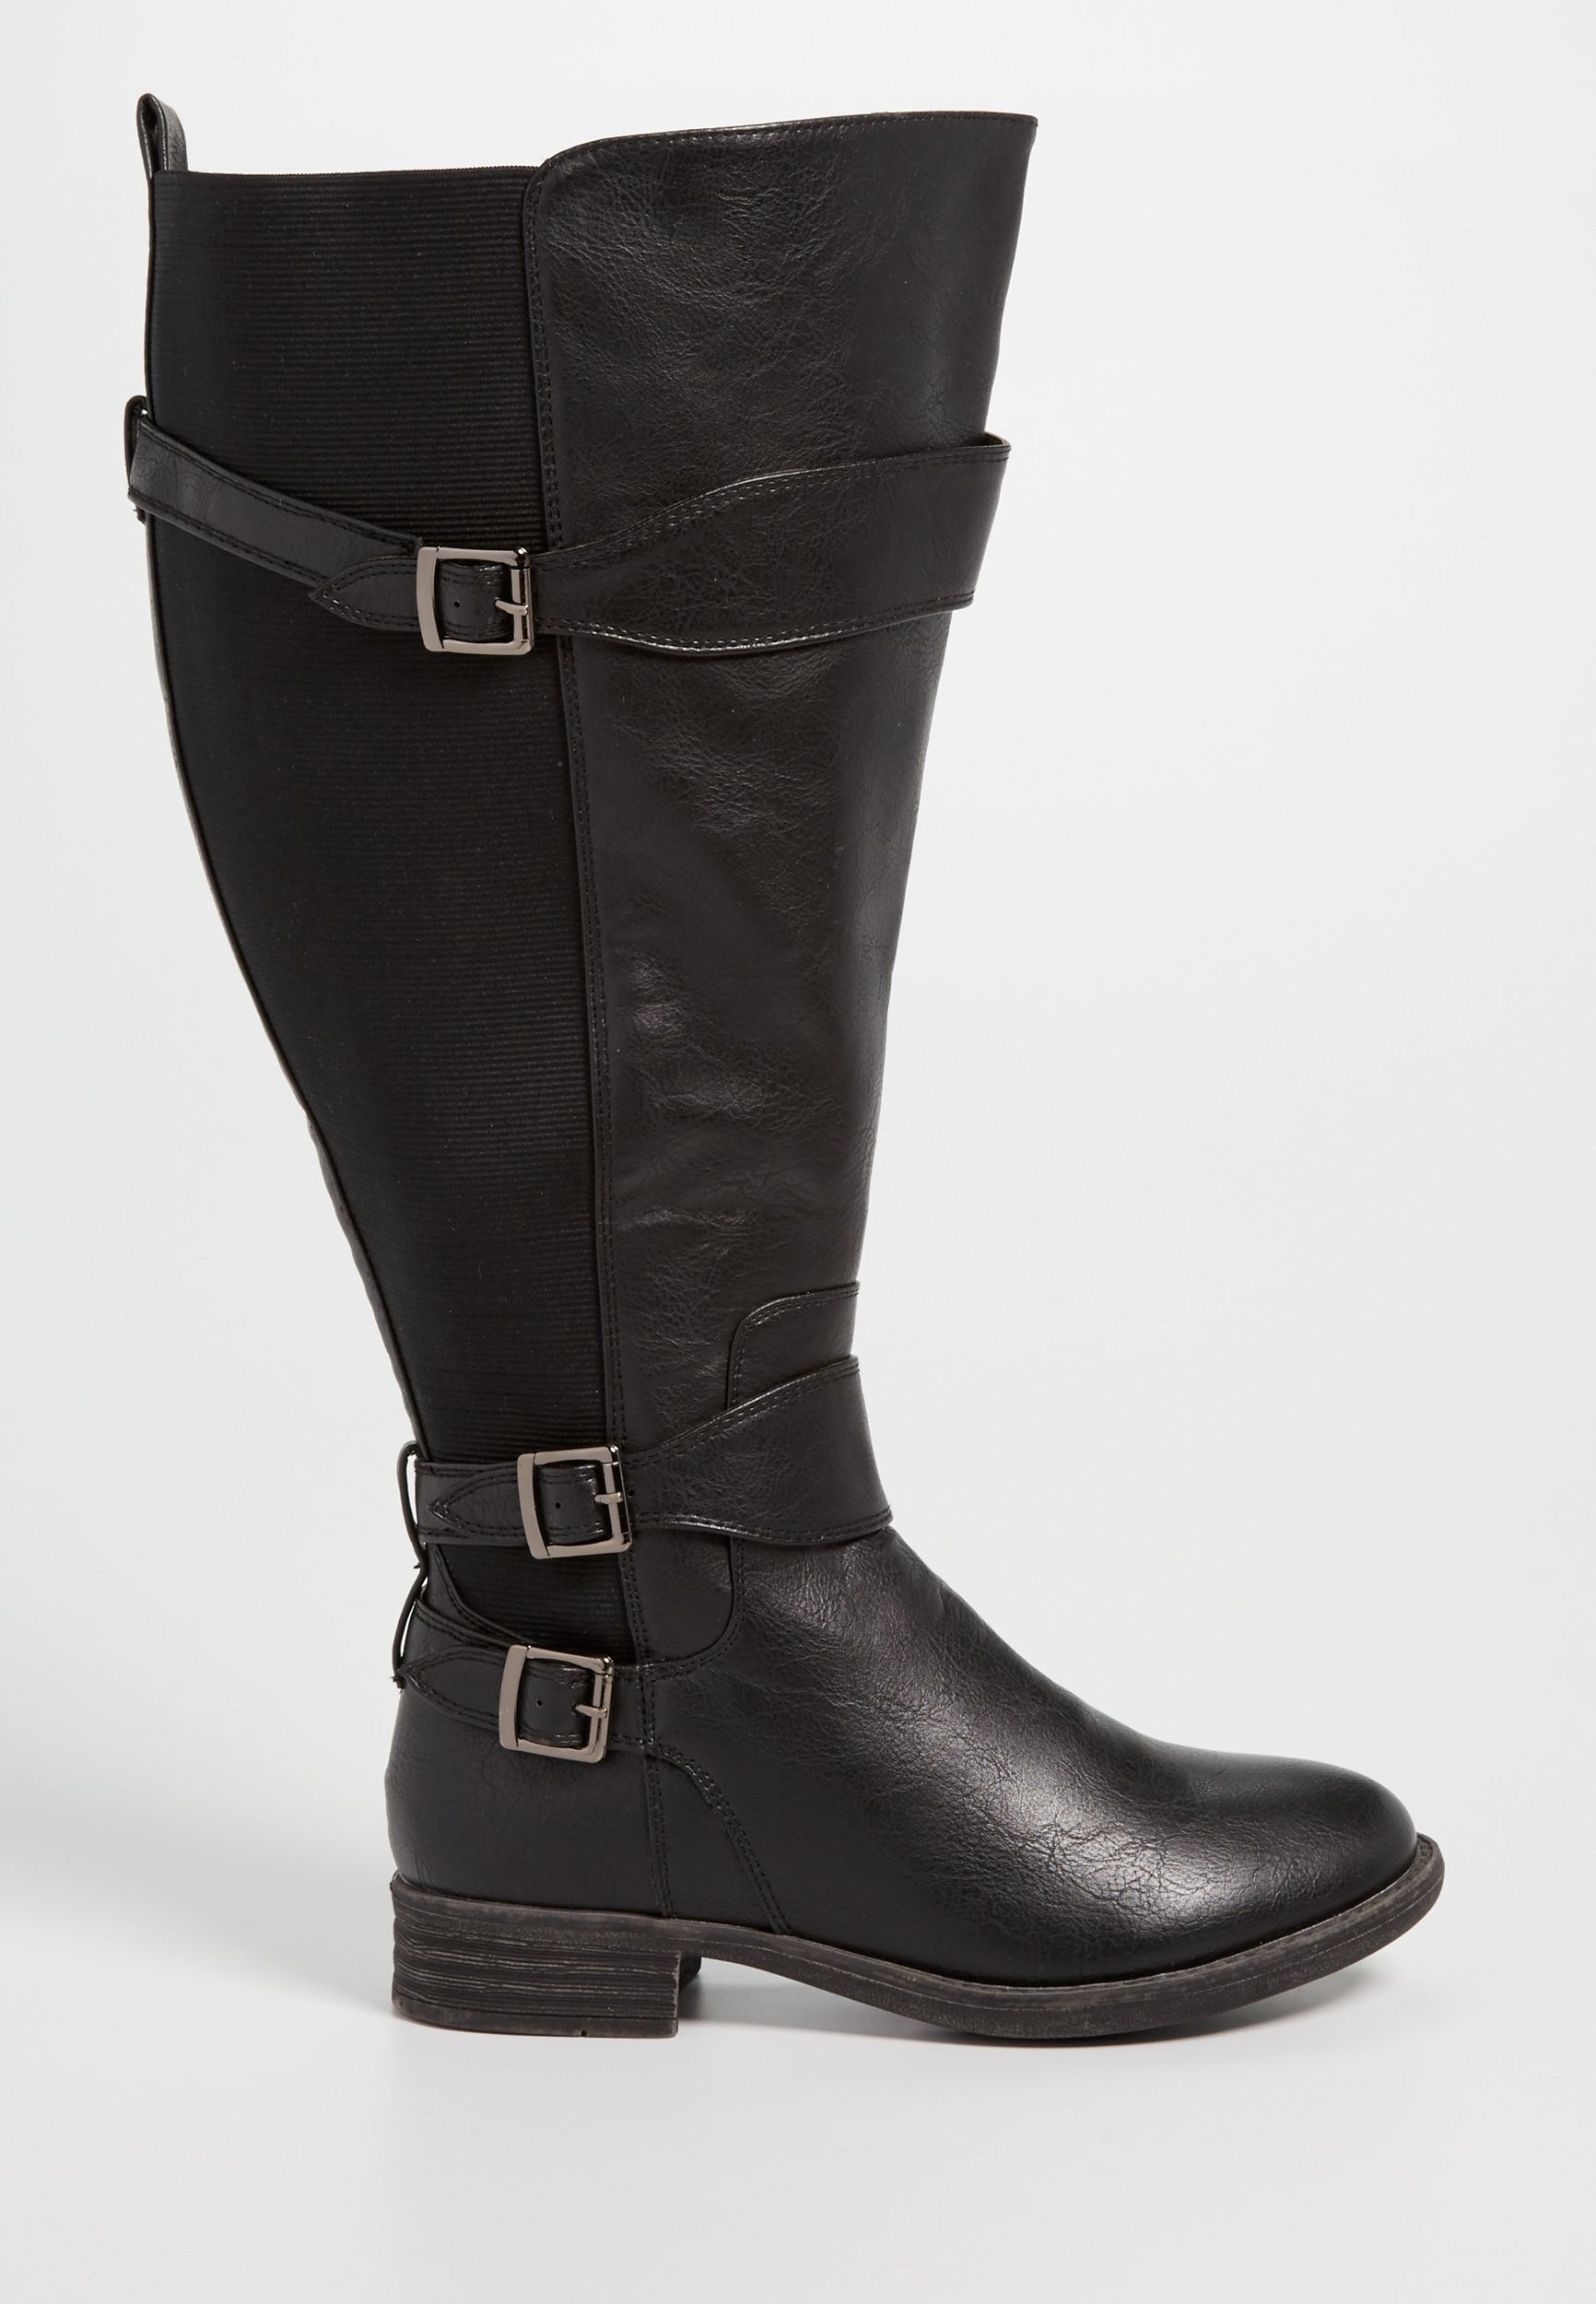 b0d41729f9d Shelby faux leather and gore extra wide calf boot in black